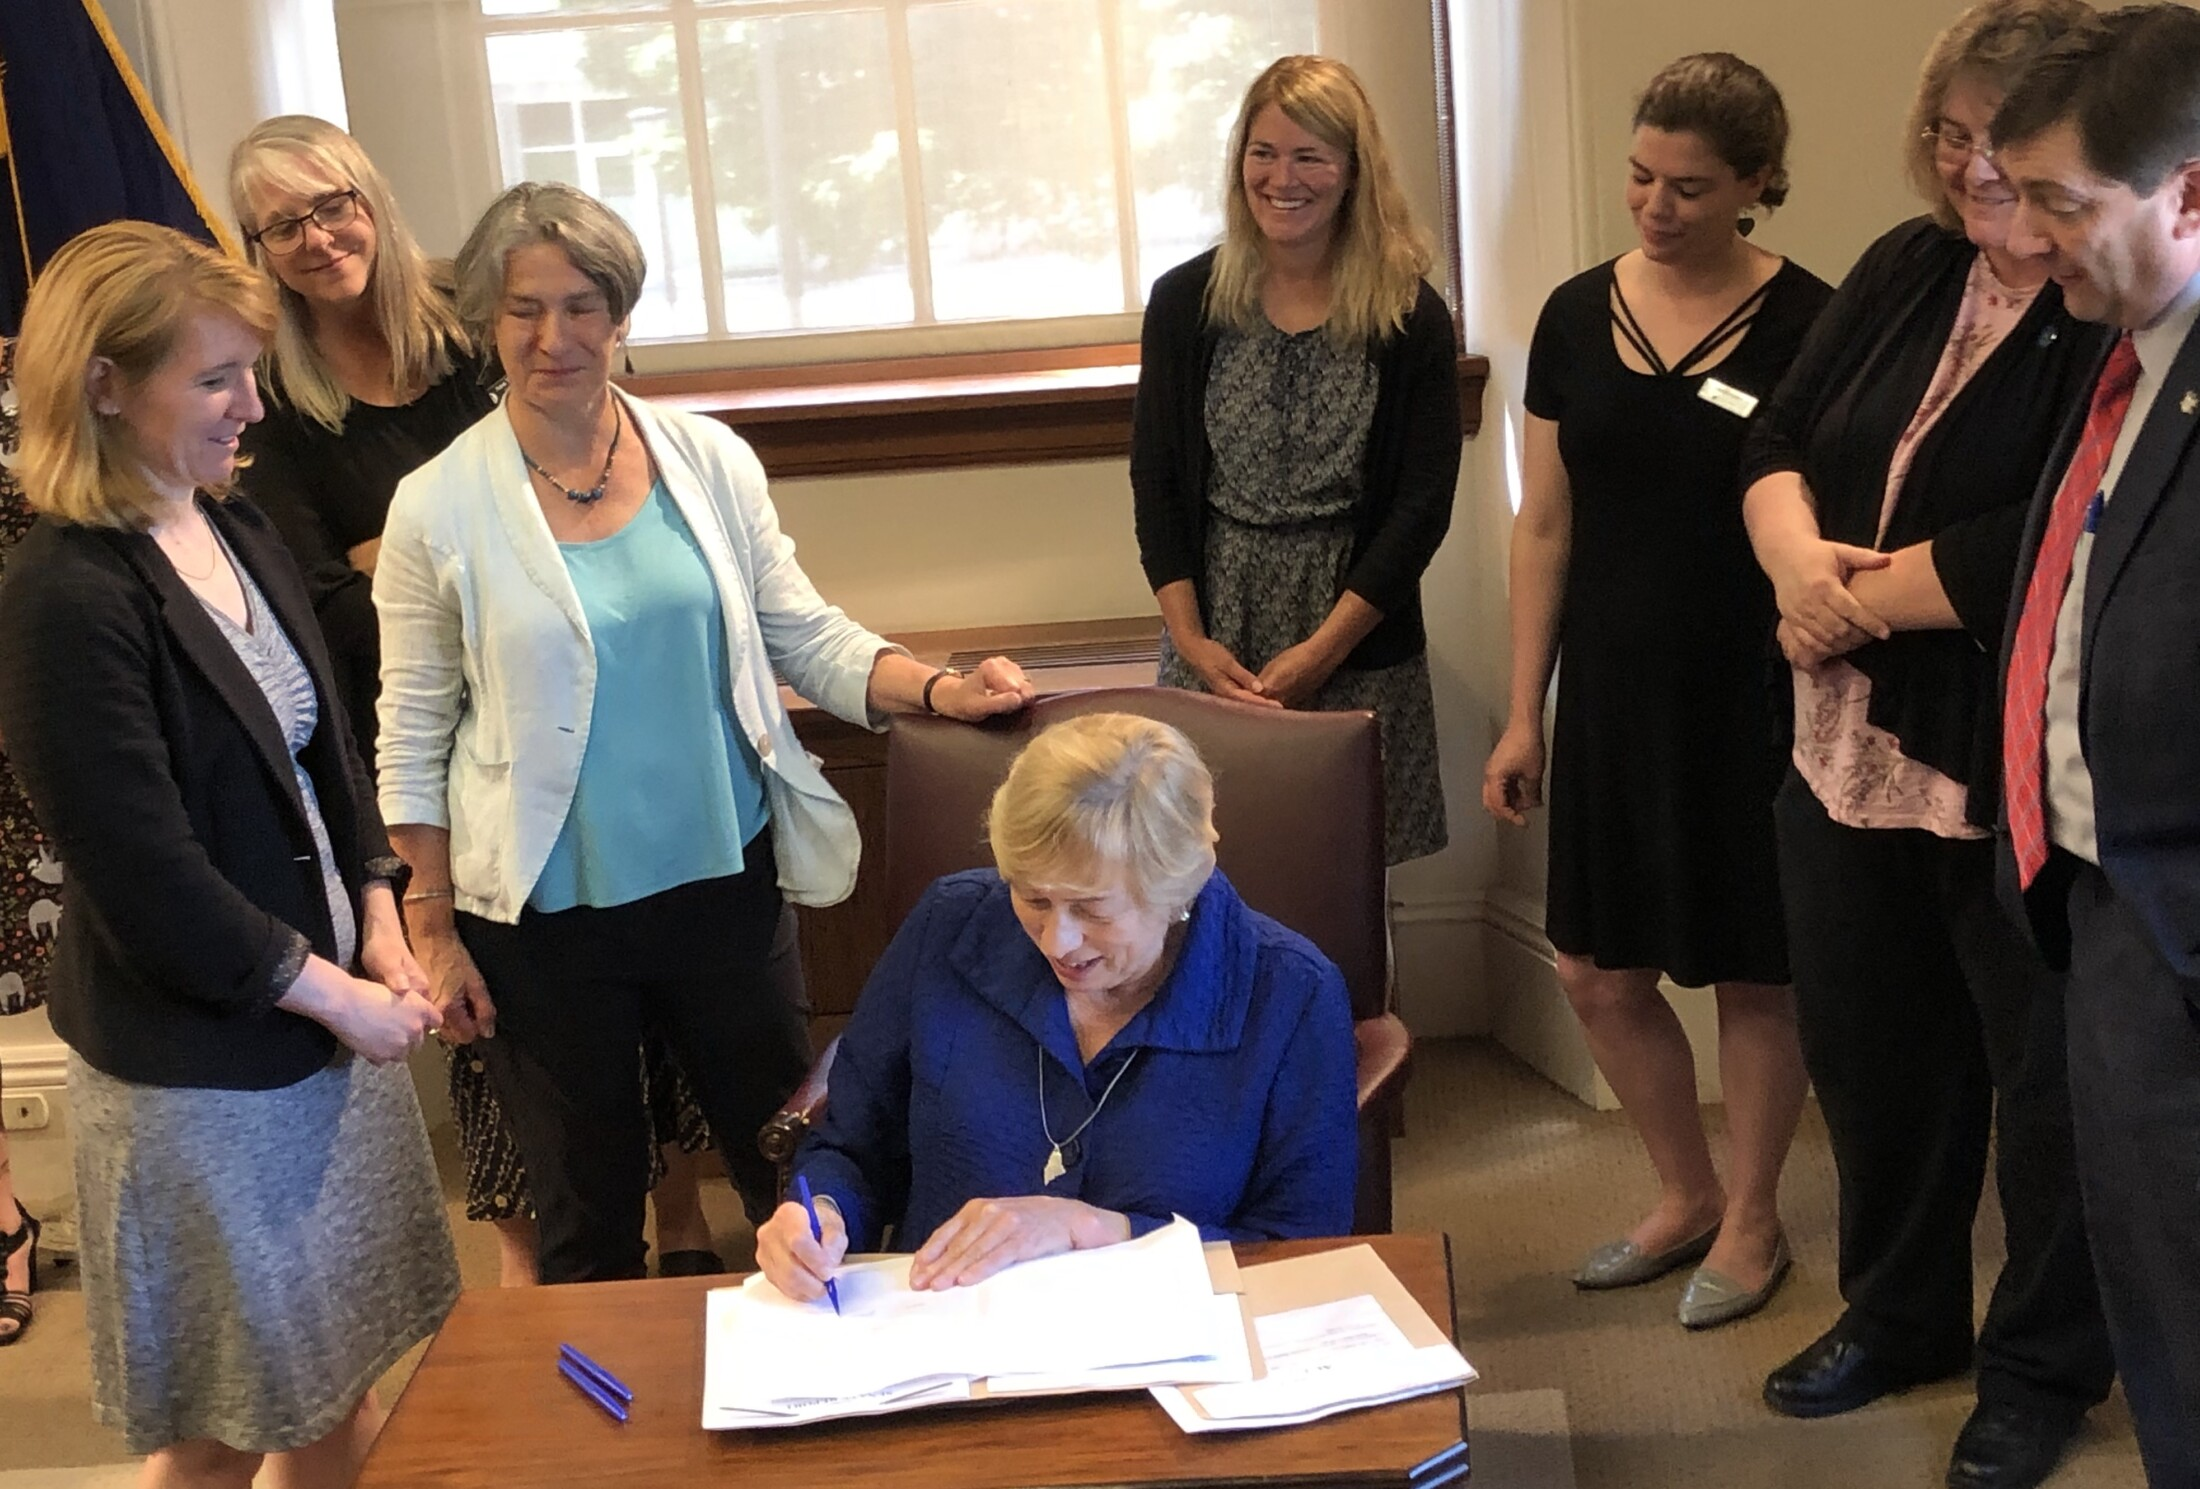 Gov. Janet Mills signs bills aimed at lowering drug prices and increasing industry transparency as state lawmakers and advocates for prescription drug price reform gather in the Cabinet room at the State House on Monday.